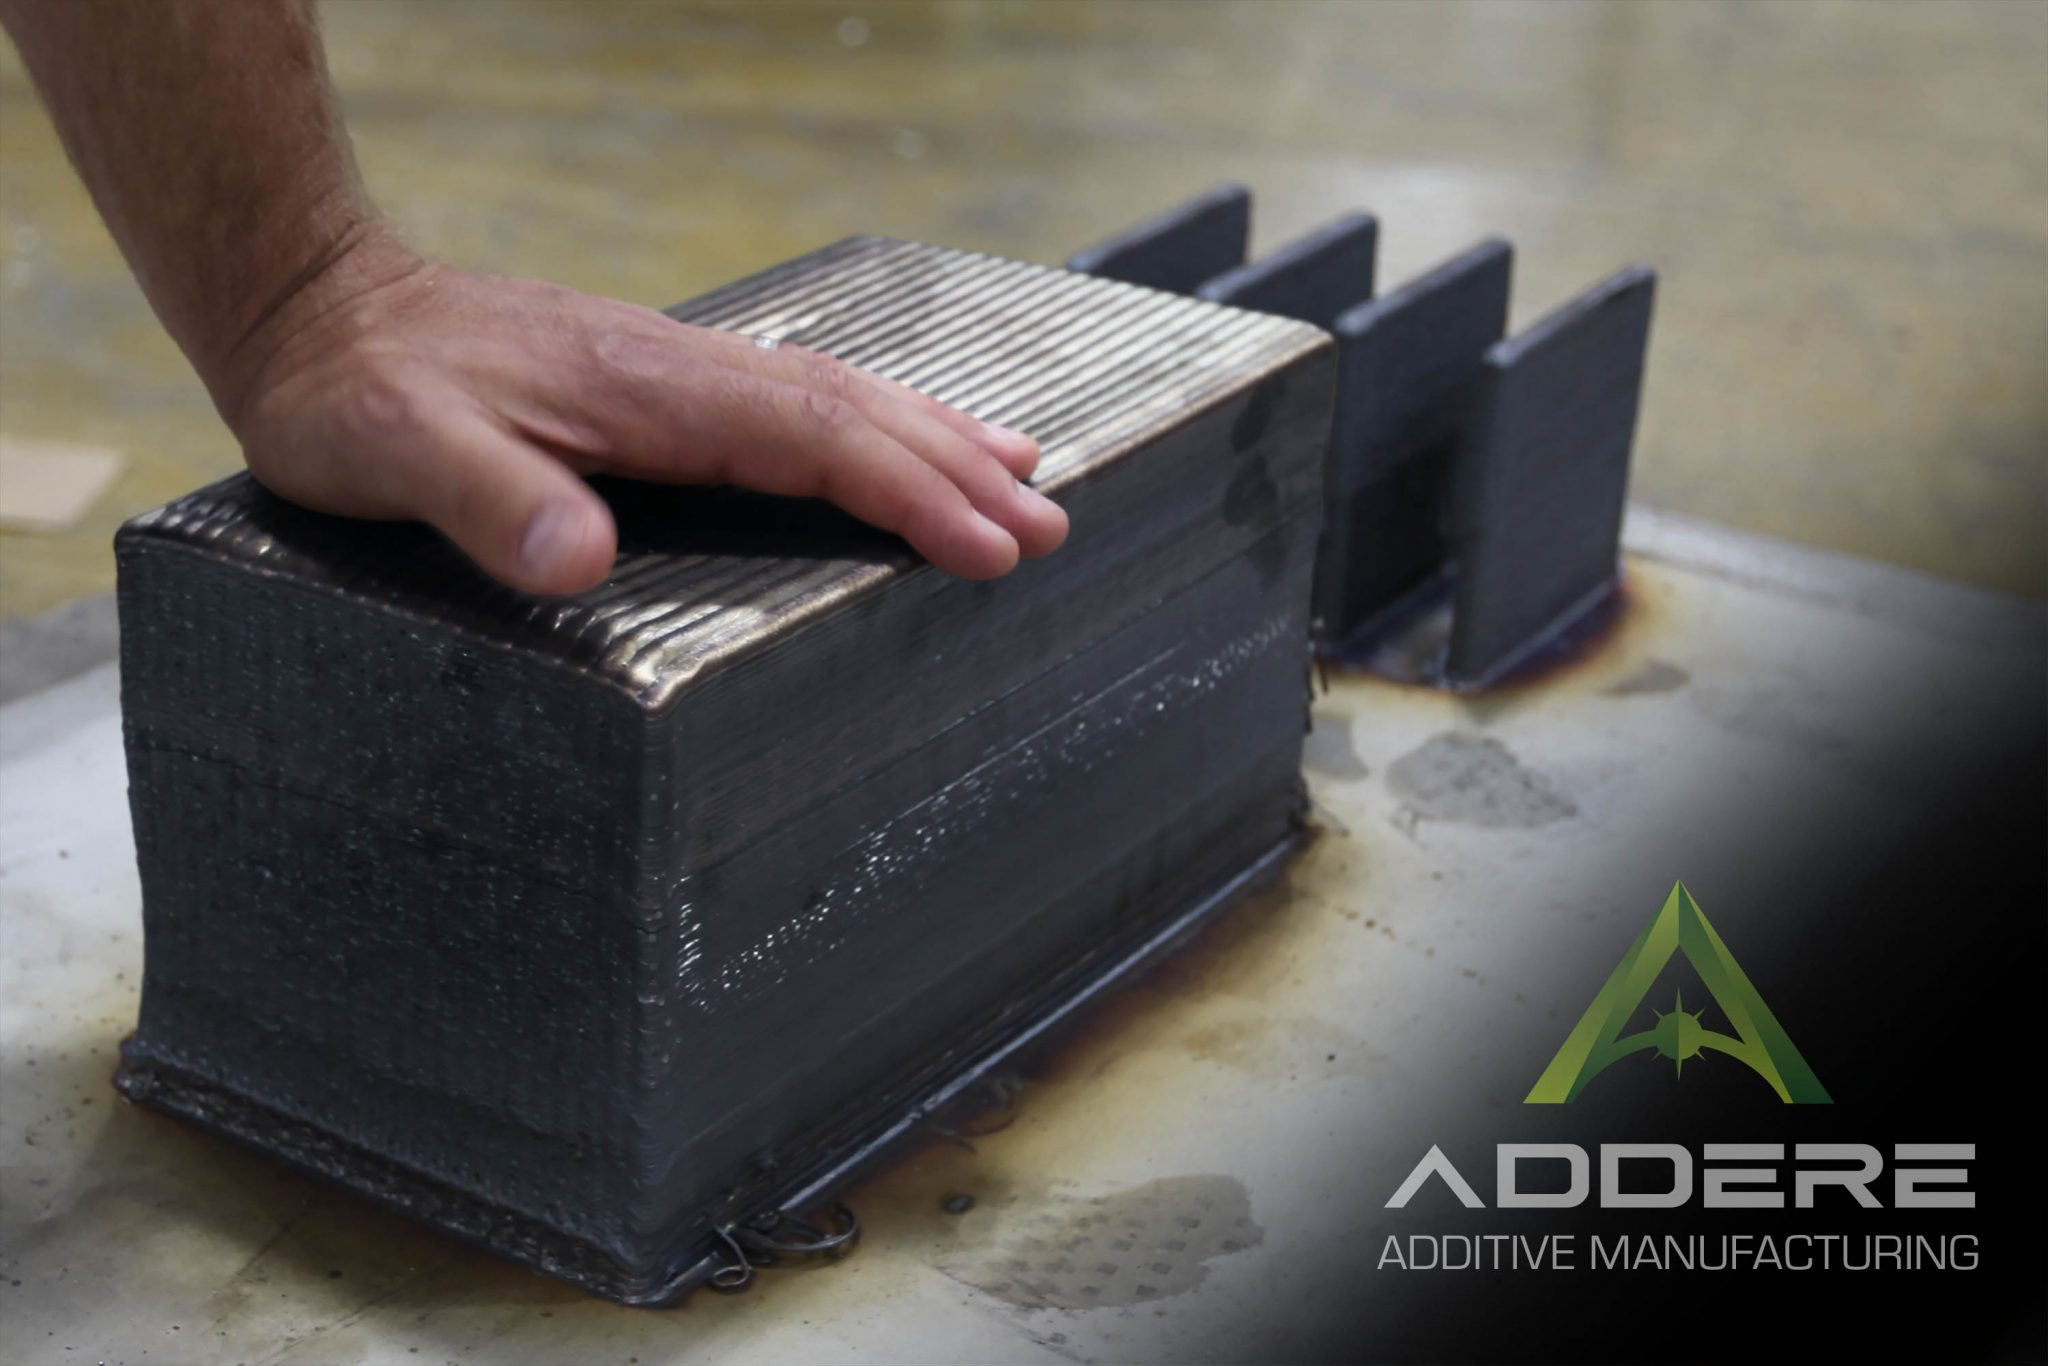 A 3D printed steel block with a machined section. Photo via ADDere.